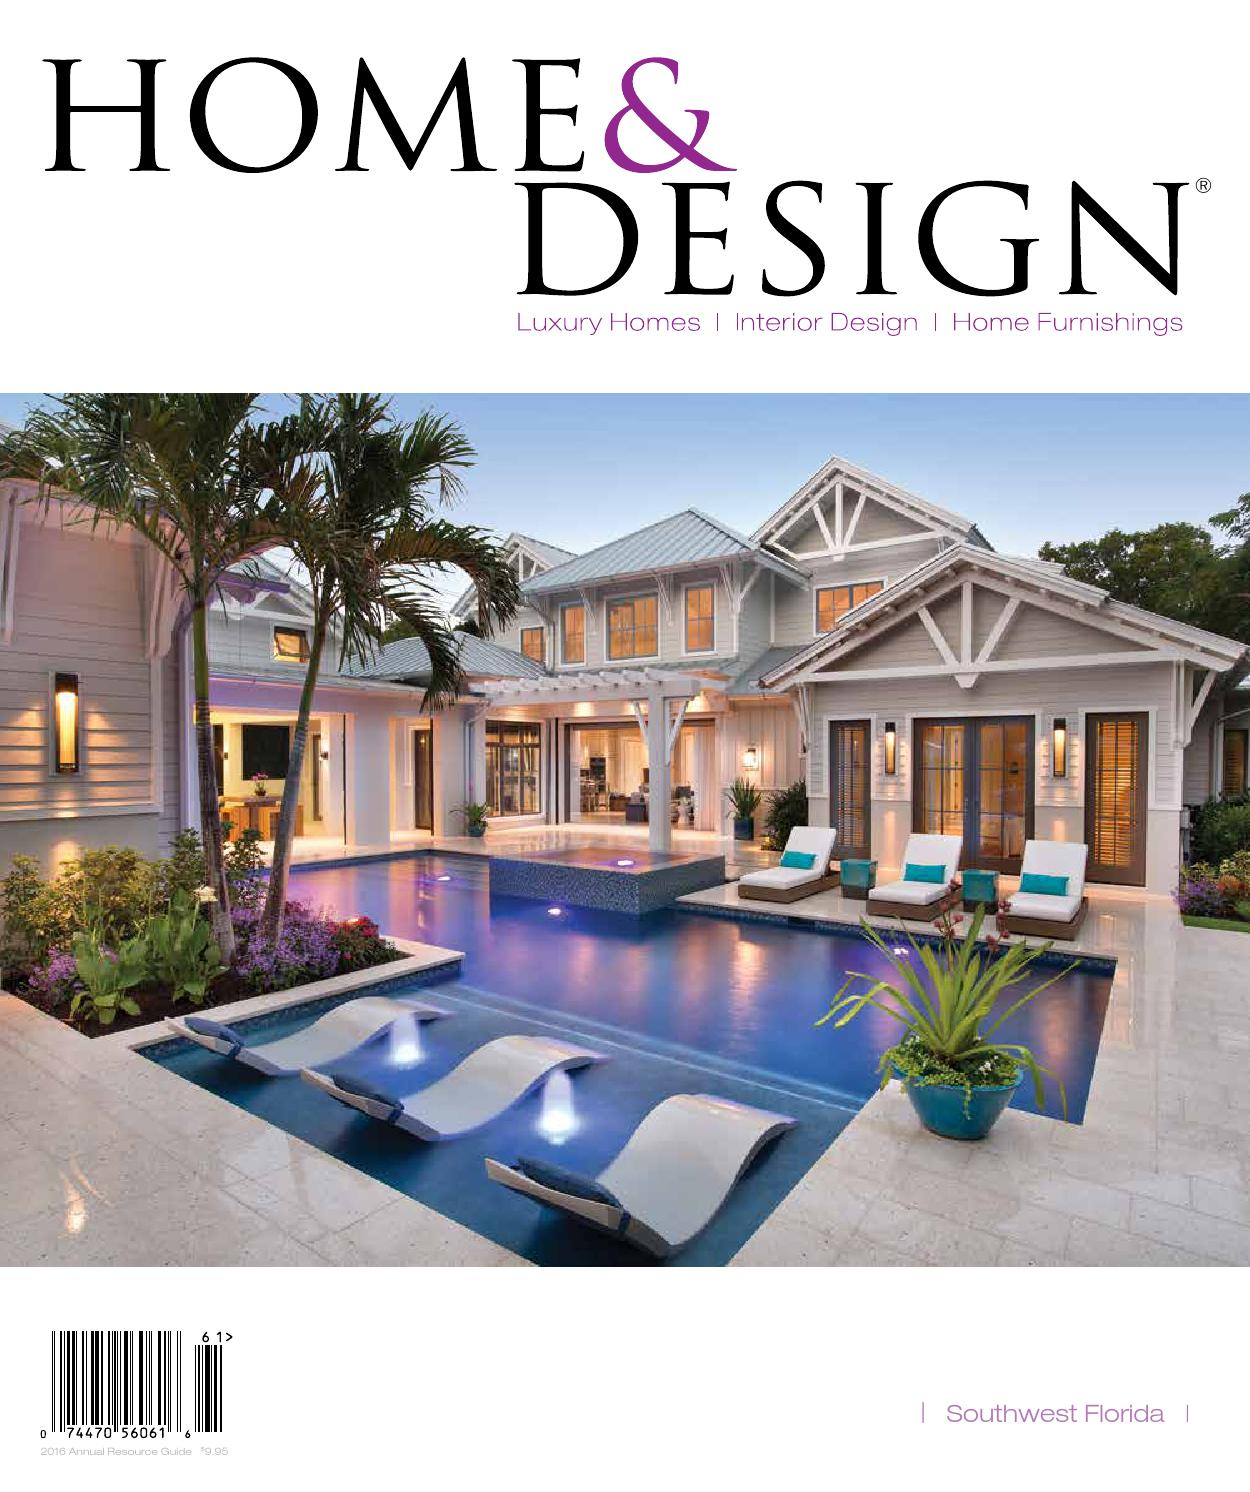 Home Design Ideas Buch: Annual Resource Guide 2016